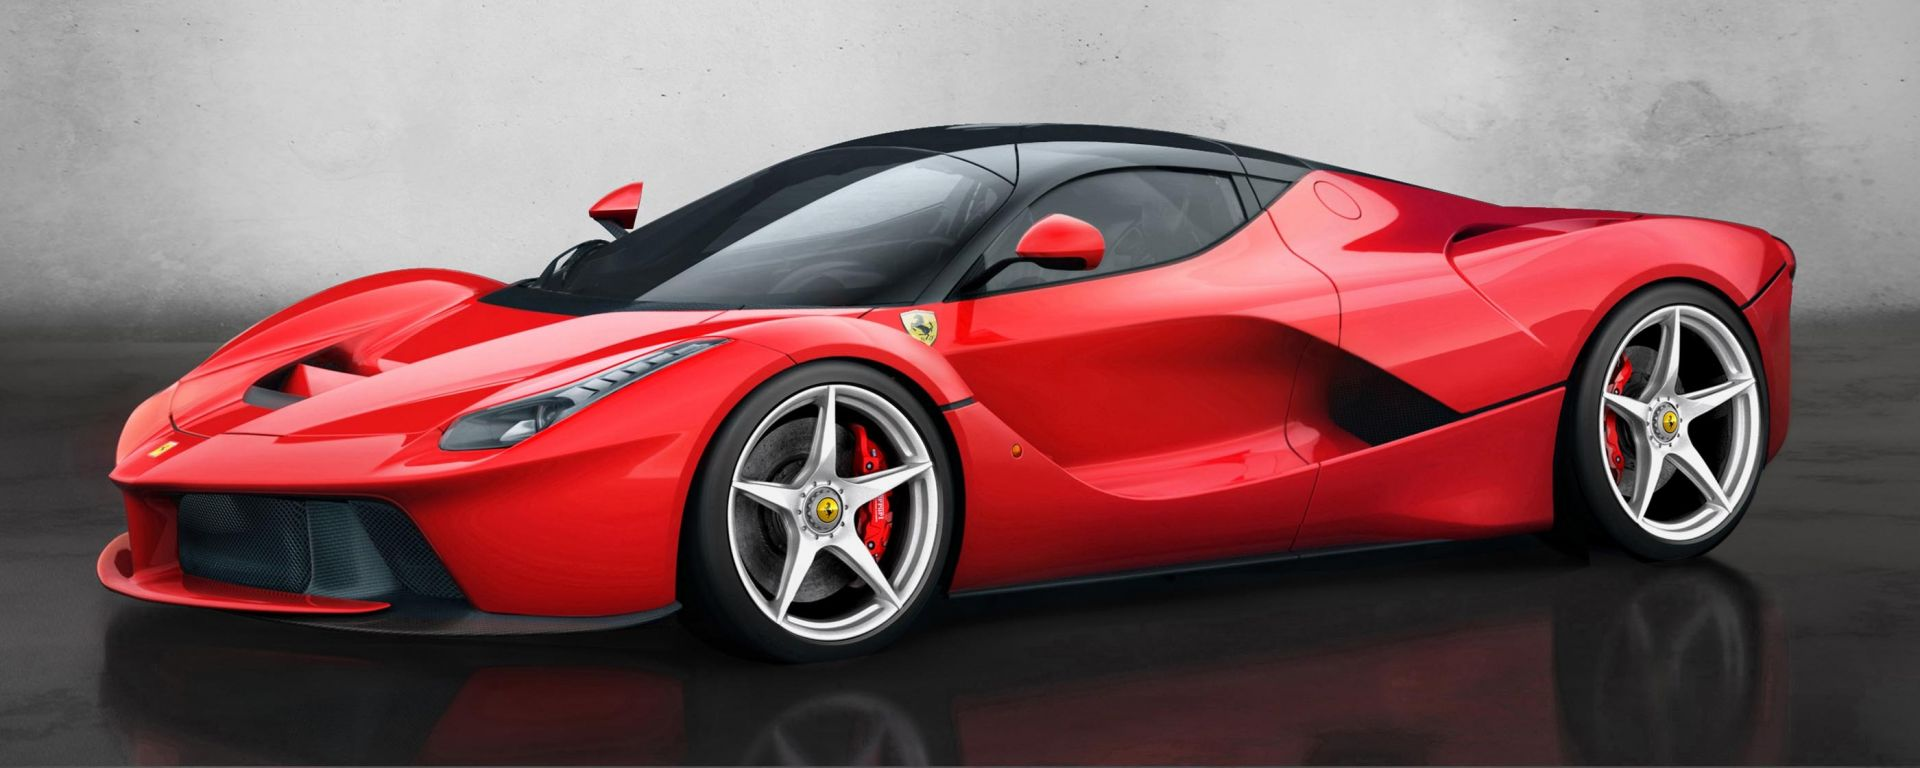 How Cool Can Be To Rent A Ferrari In Rome?